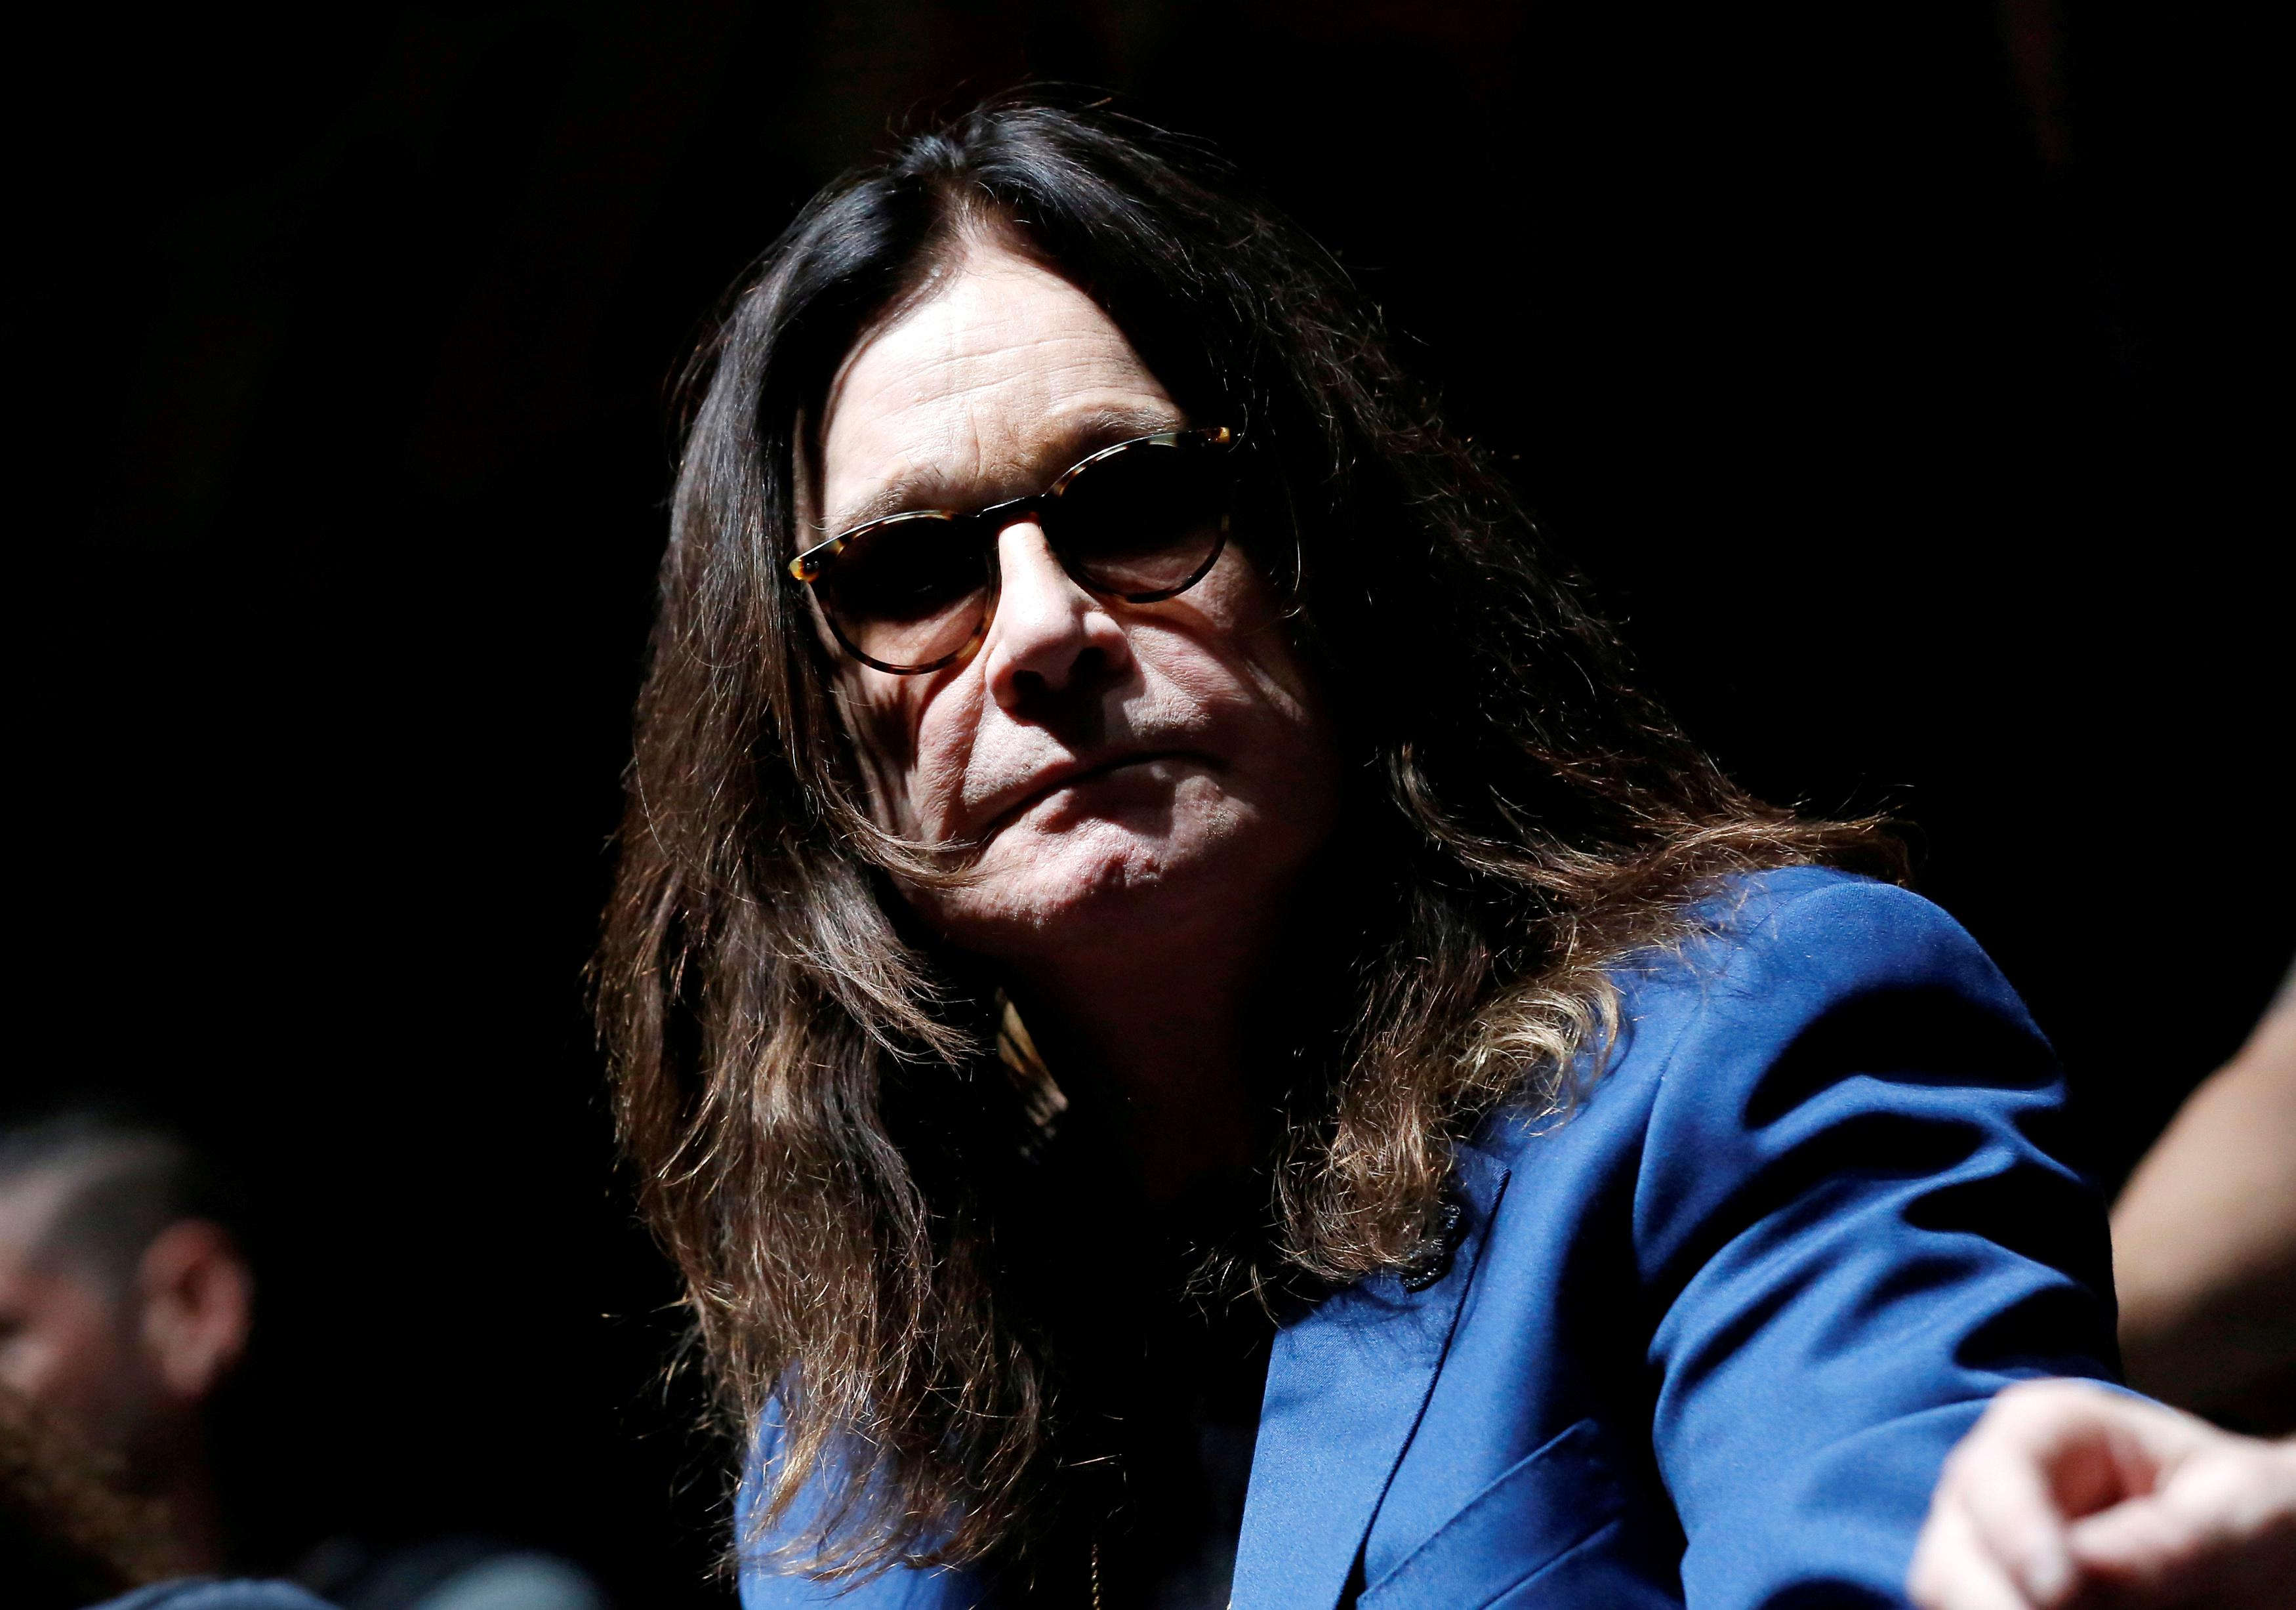 Ozzy Osbourne says he's recovering,'not dying,' but again postpones...